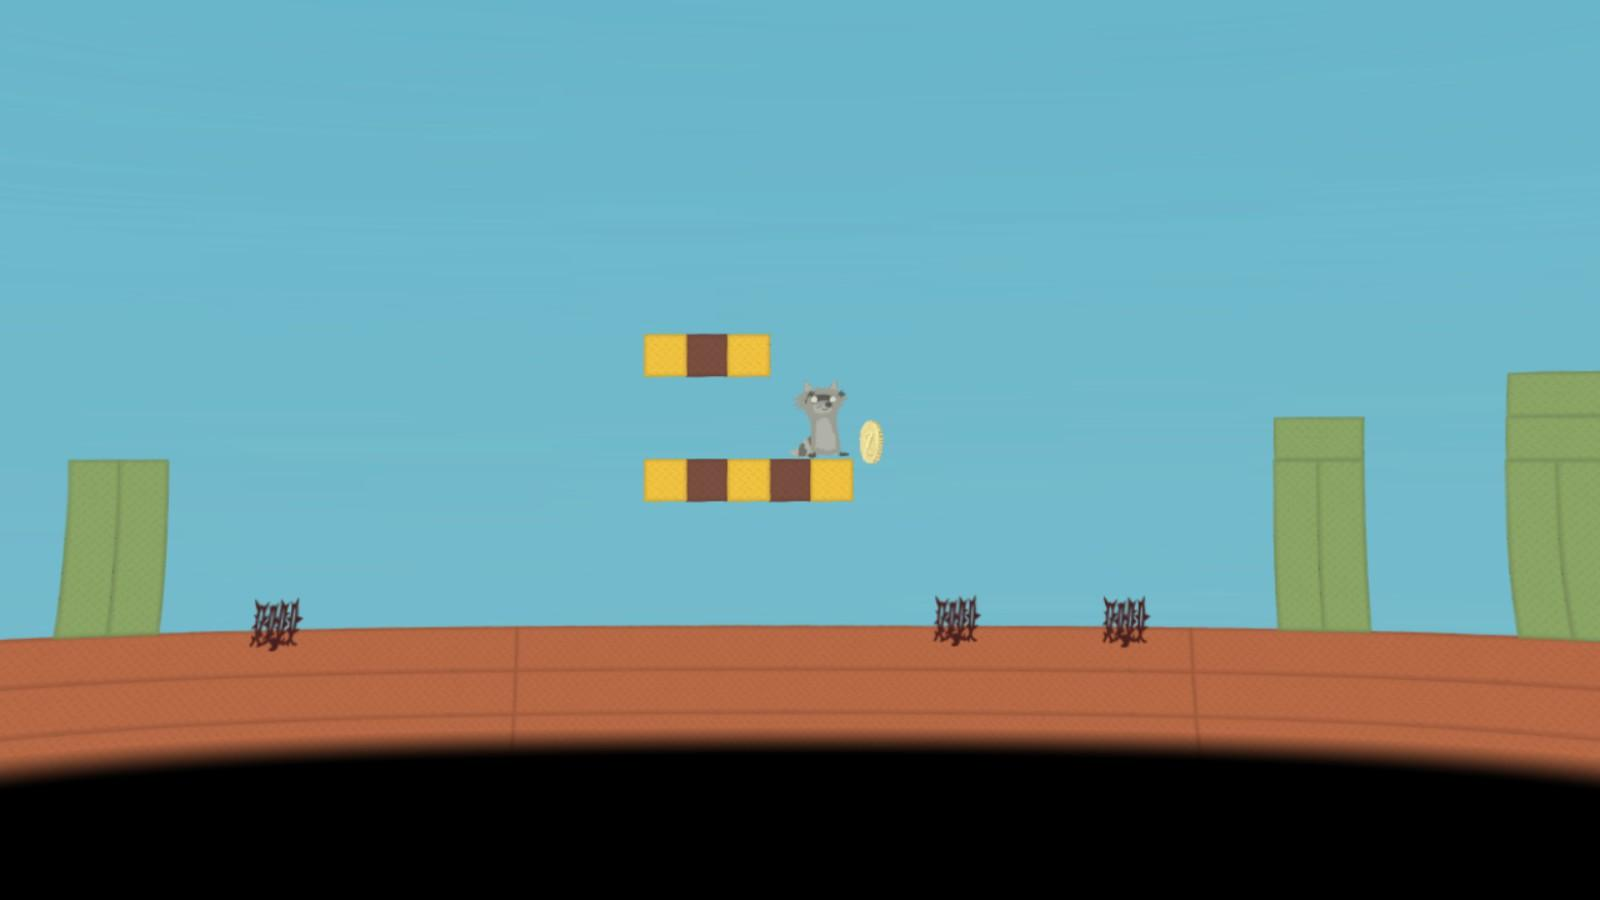 Ultimate Chicken Horse - Tips, Tricks and Usage